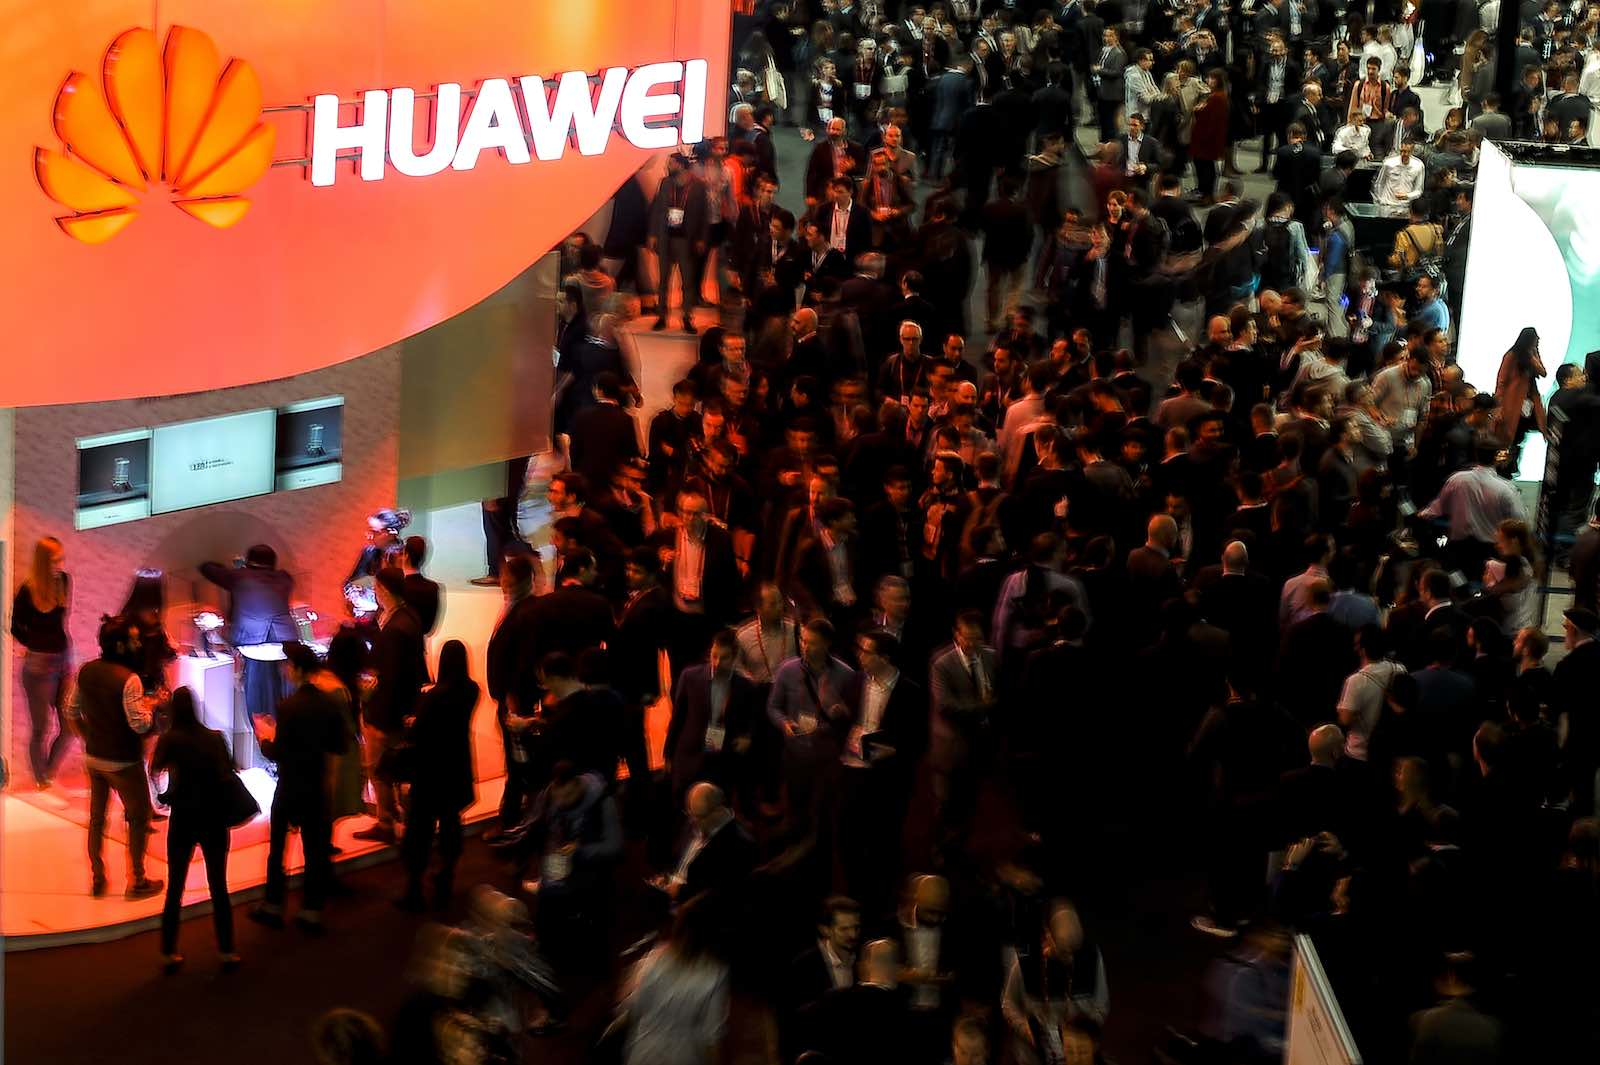 A Huawei stand at the Mobile World Congress in Barcelona, Spain, 2017 (Photo: Joan Cros Garcia via Getty)